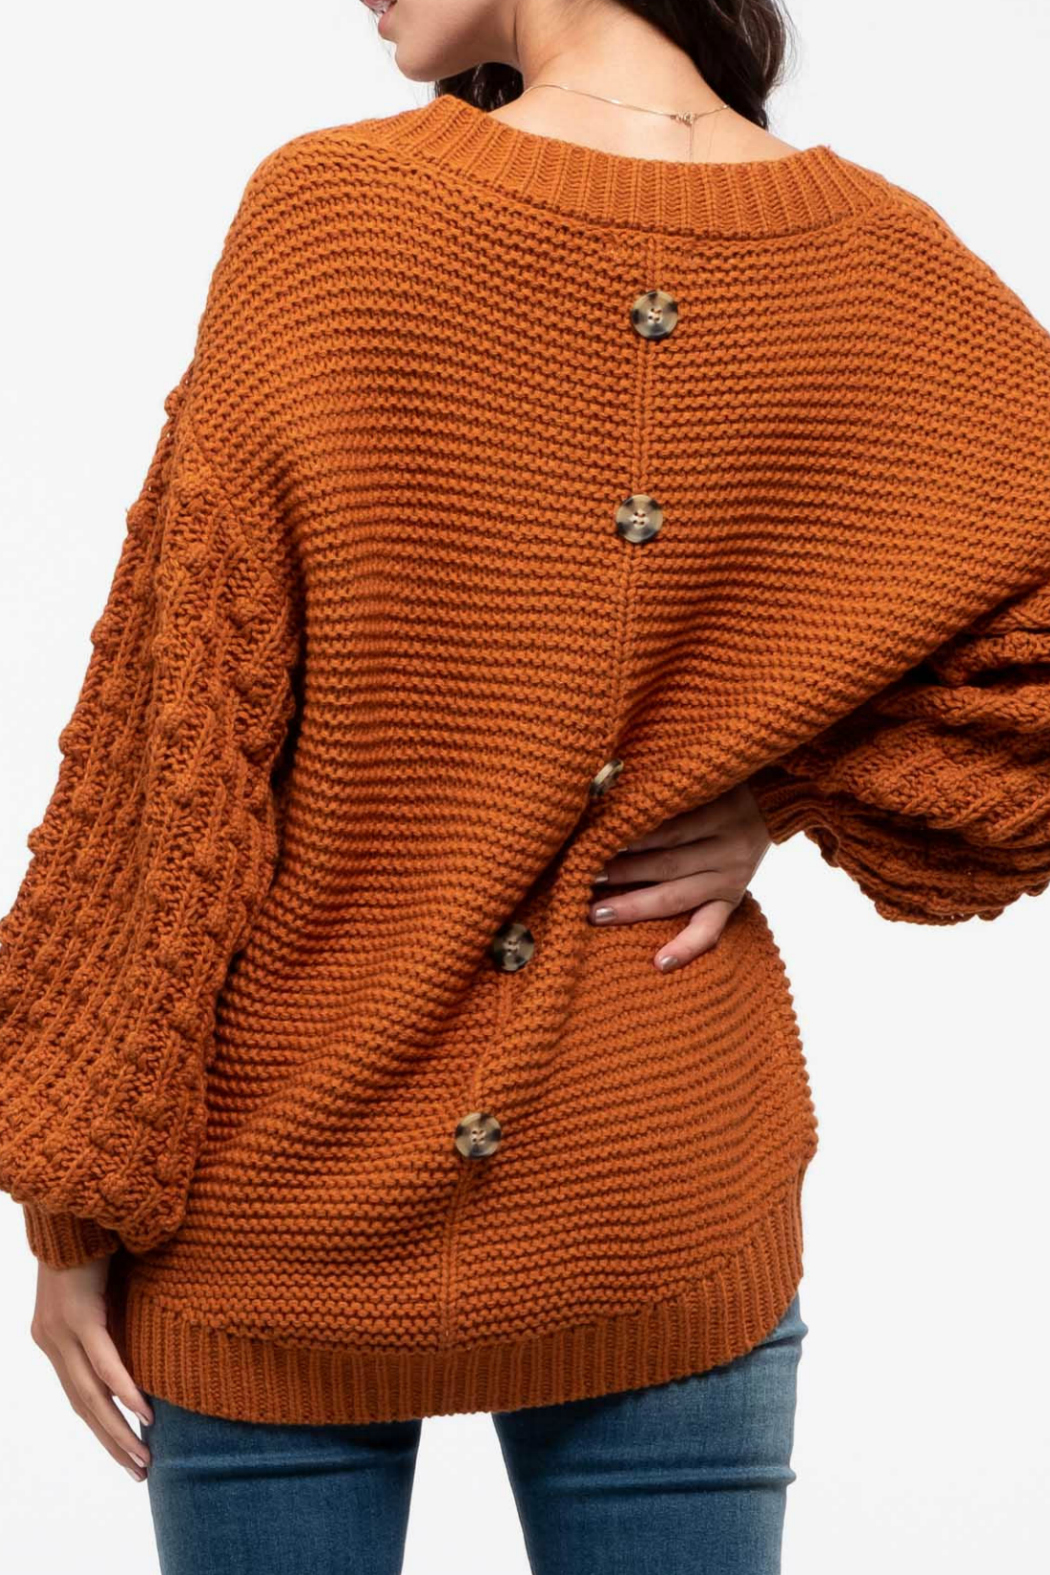 Blu Pepper Back-Button Knit Sweater - Front Full Image